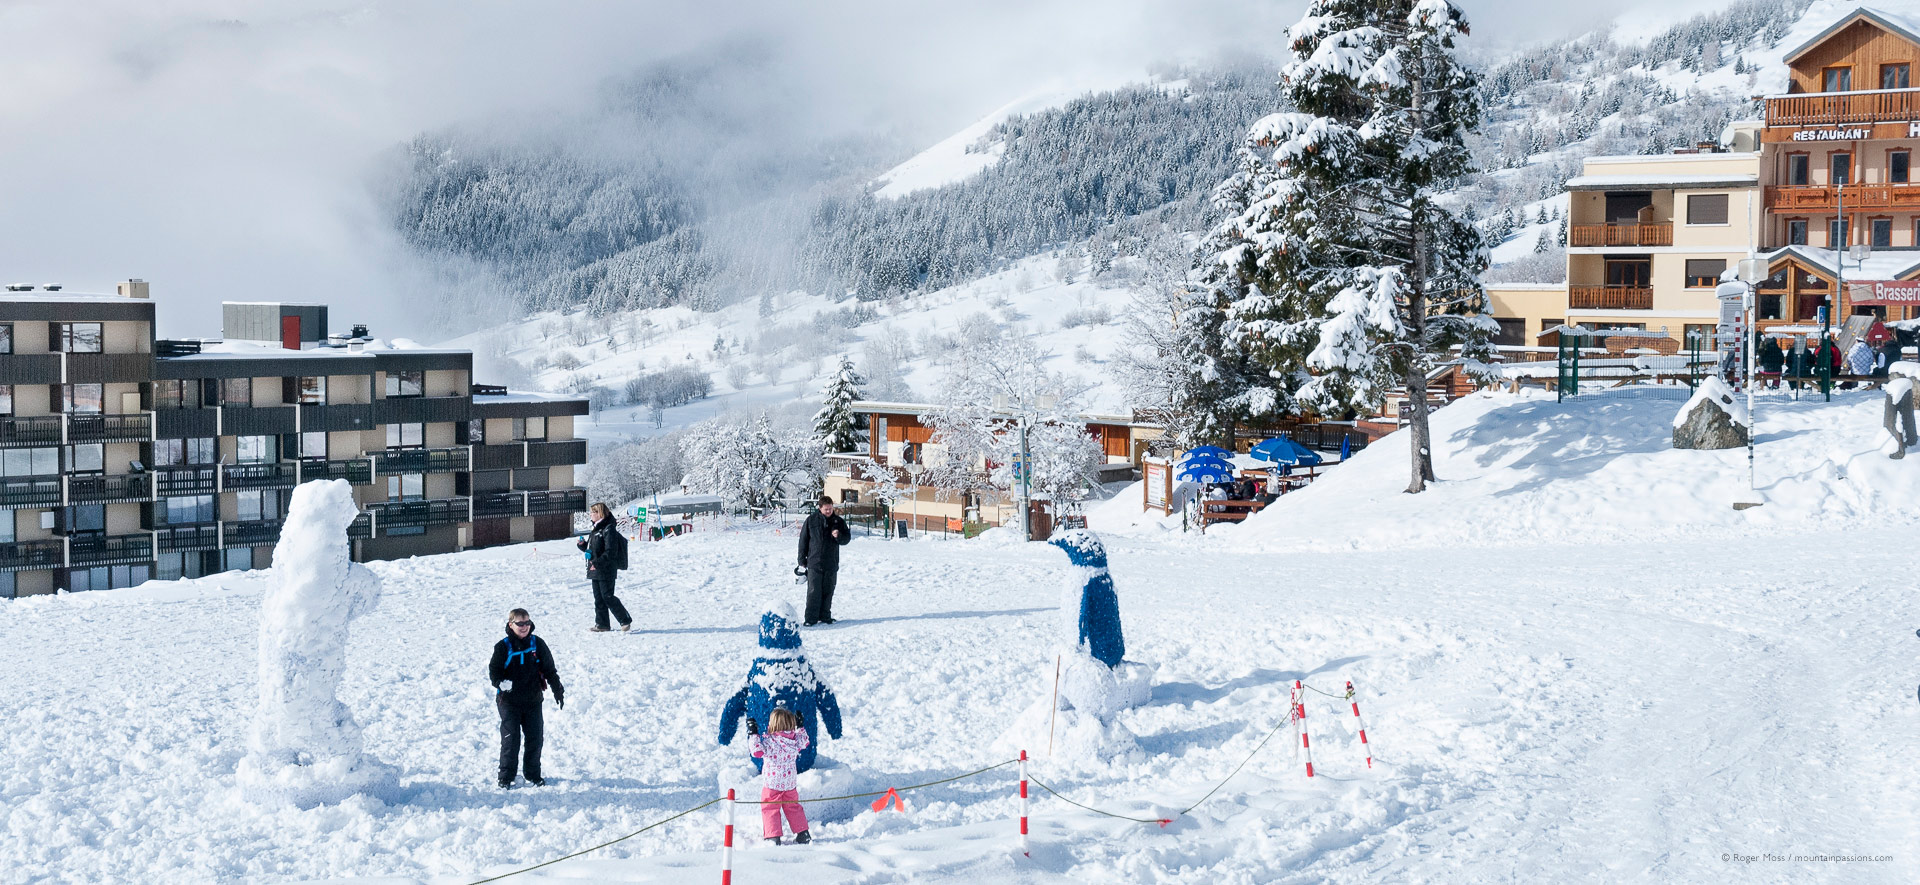 Families enjoying fresh snow at the ski village of Saint-Francois Longchamp.